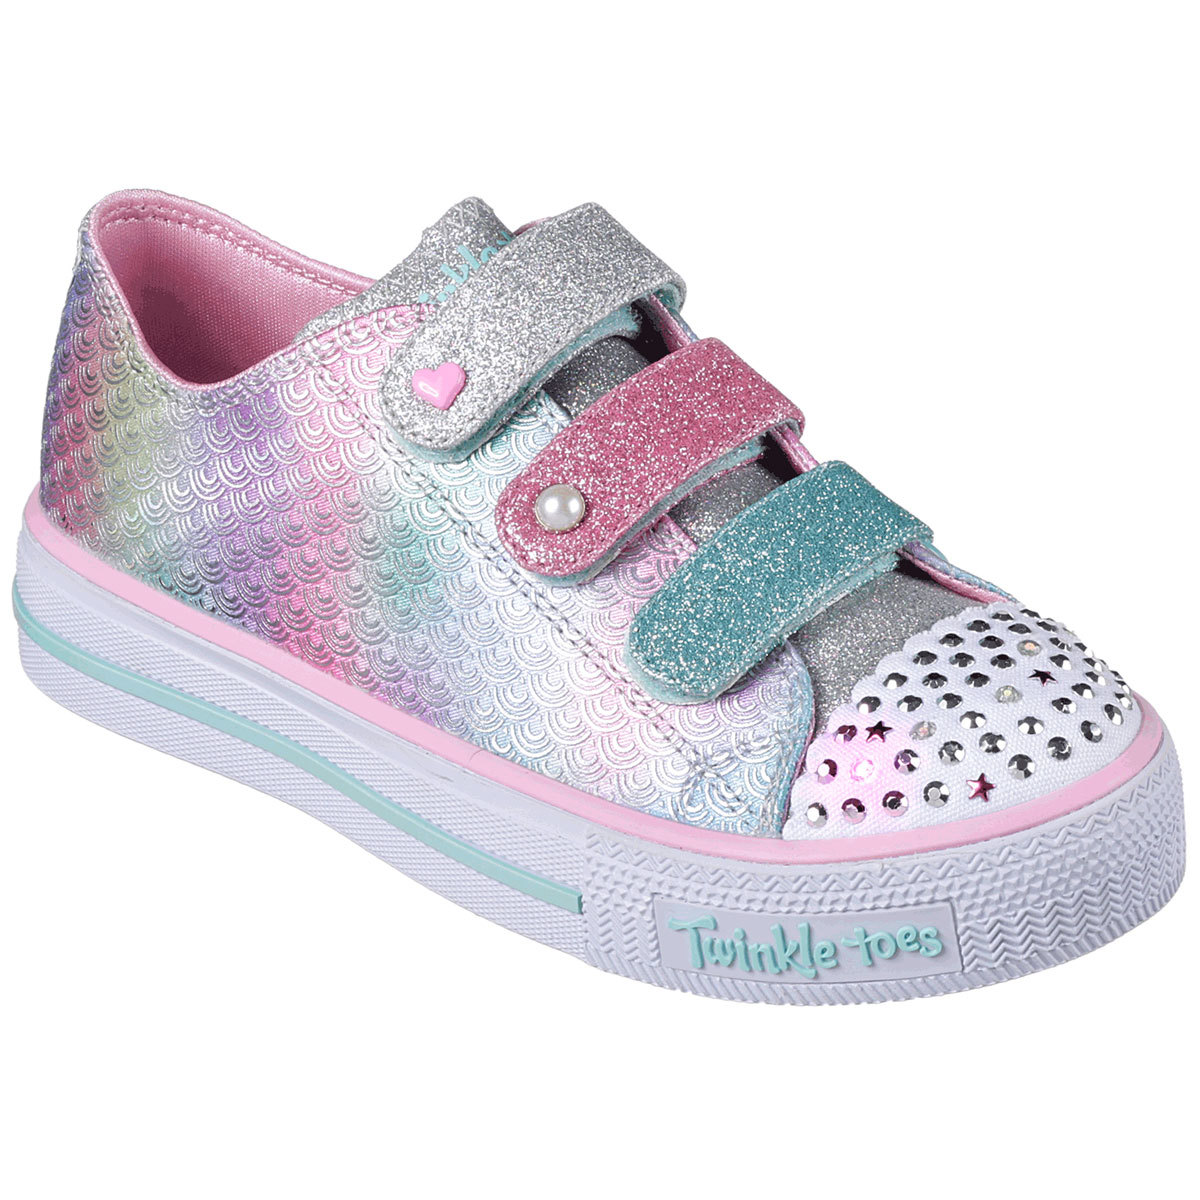 Skechers Toddler Girls' Twinkle Toes: Shuffles - Ms. Mermaid Sneakers - Black, 7